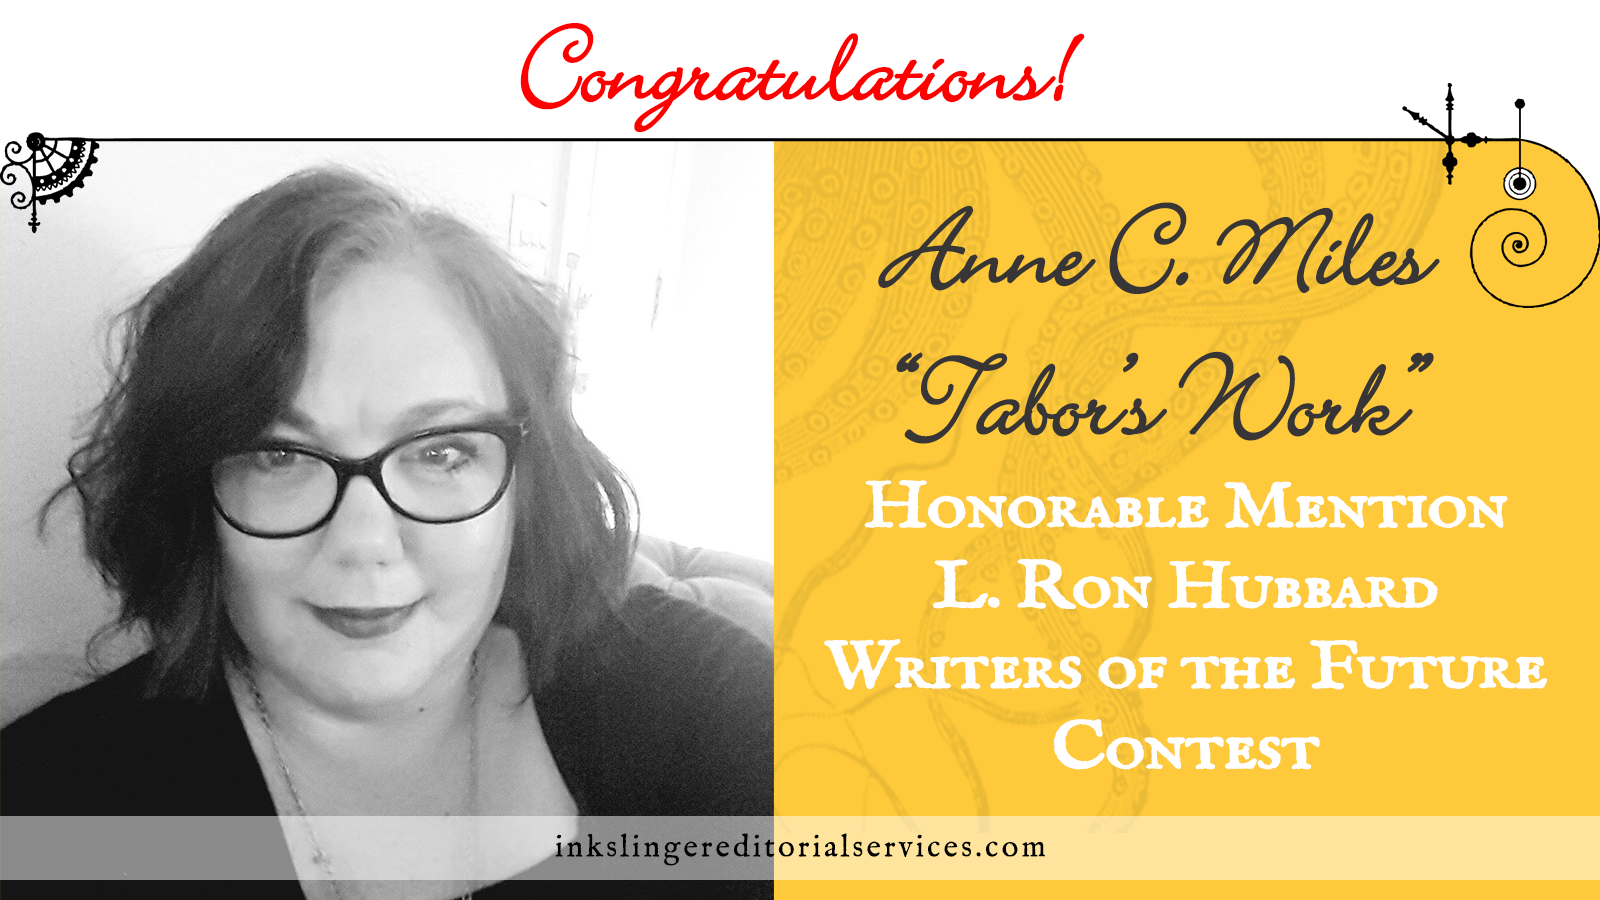 Congratulations to author Anne C. Miles for her Honorable Mention in the L. Ron Hubbard Writers of the Future Contest!